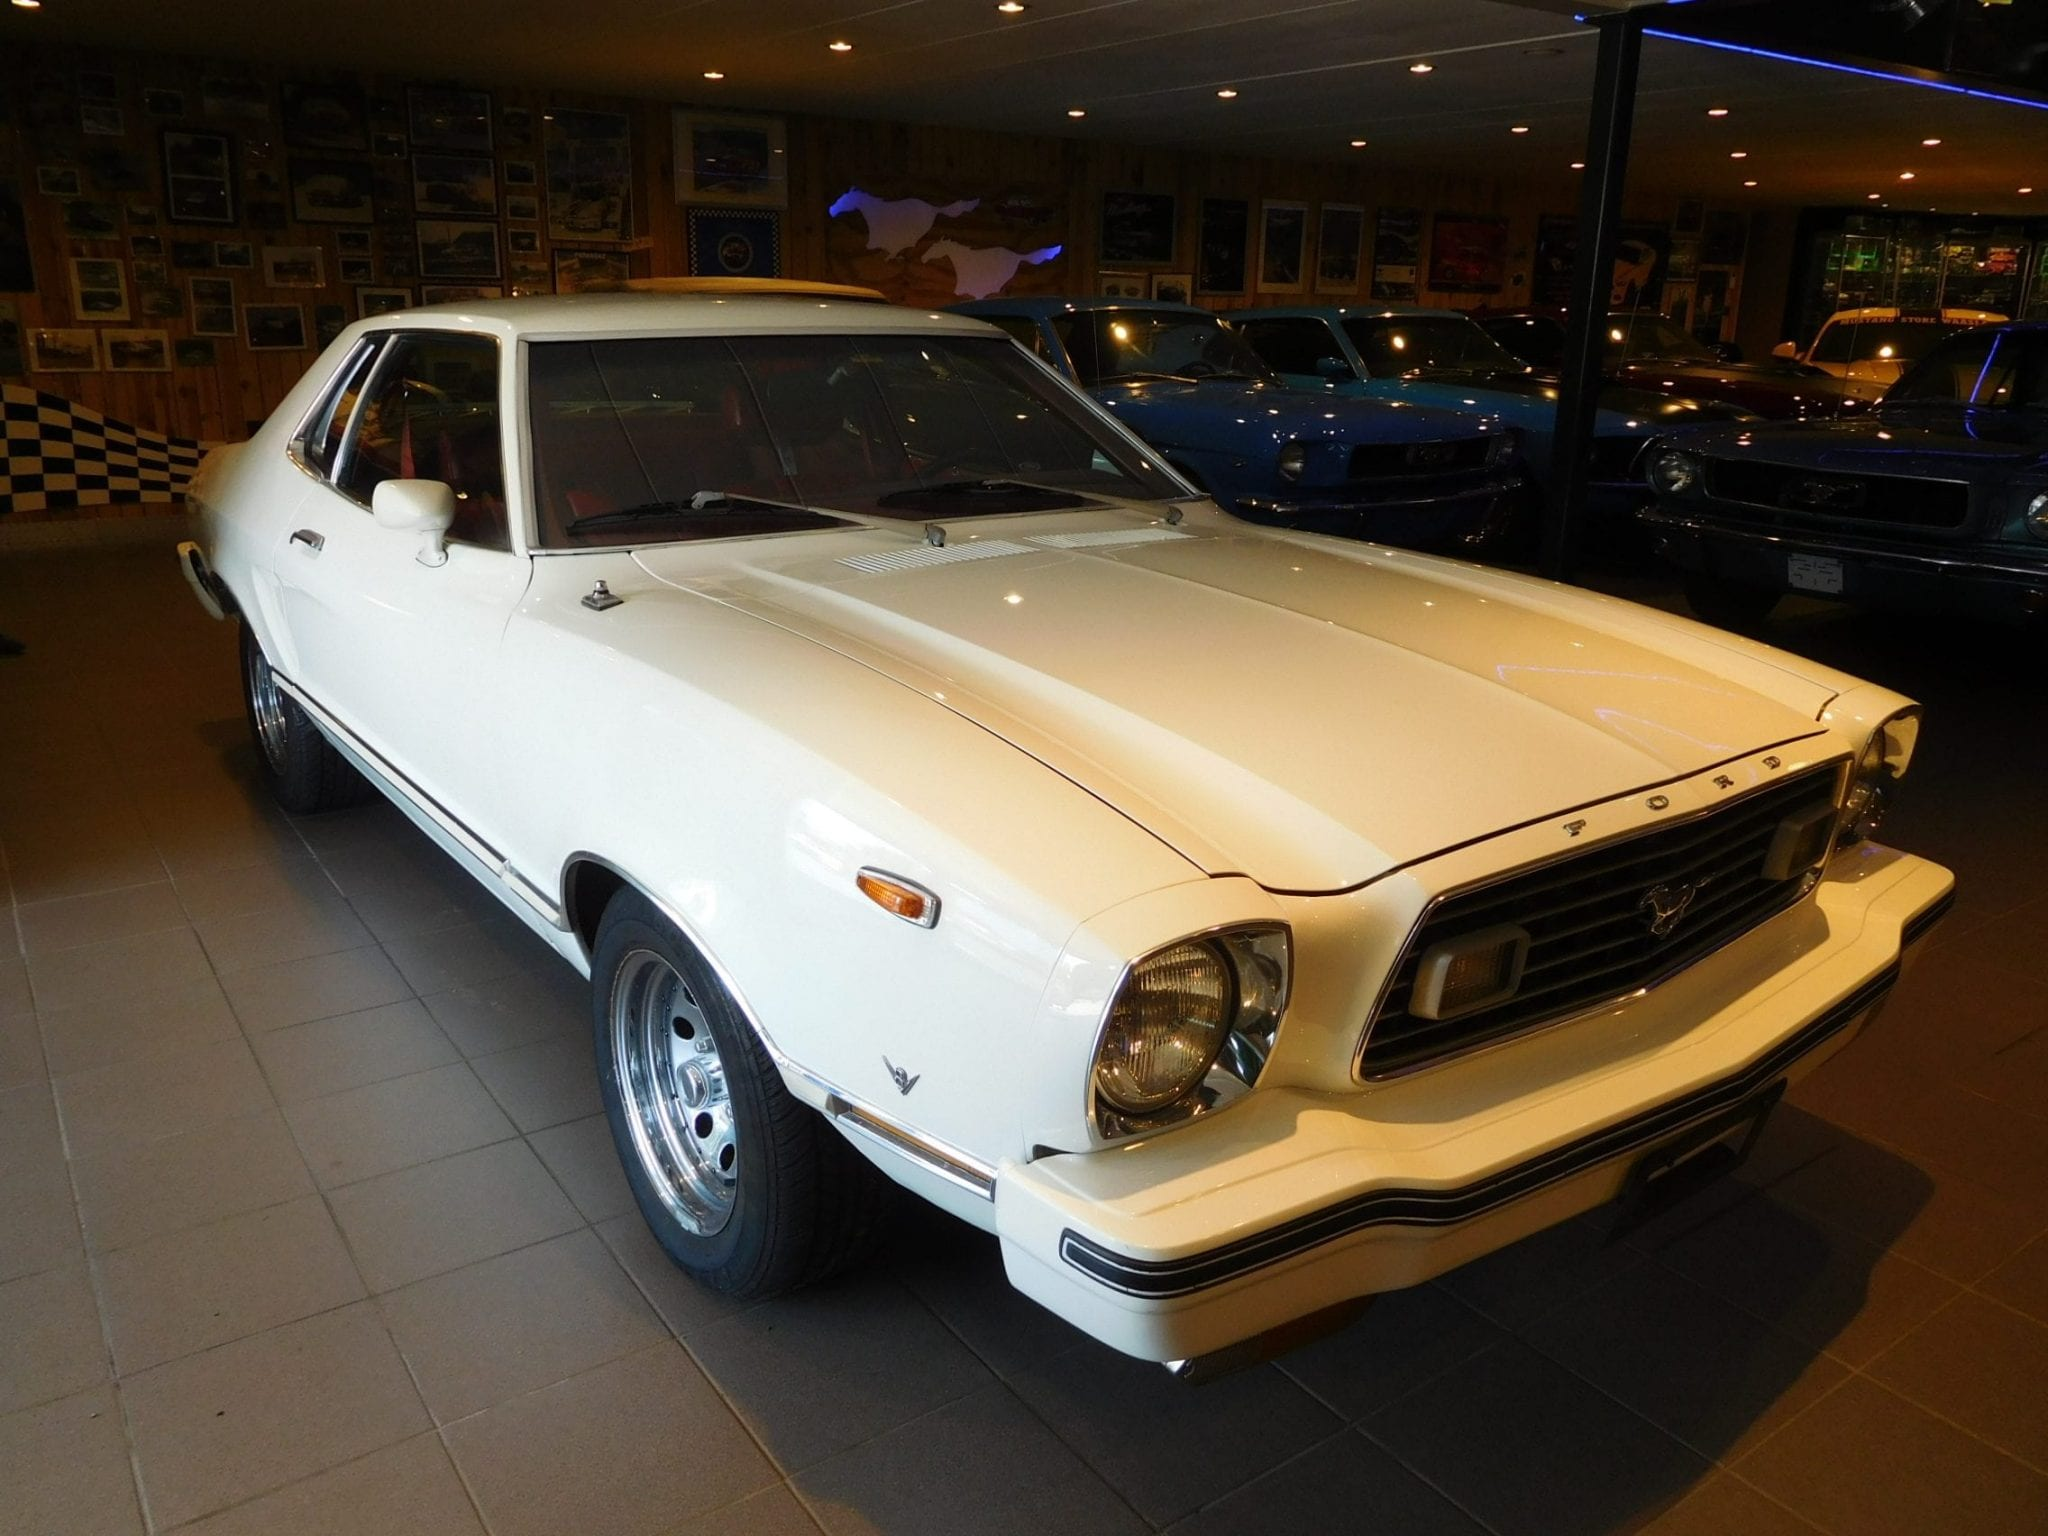 Ford mustang 1977 coupe 693